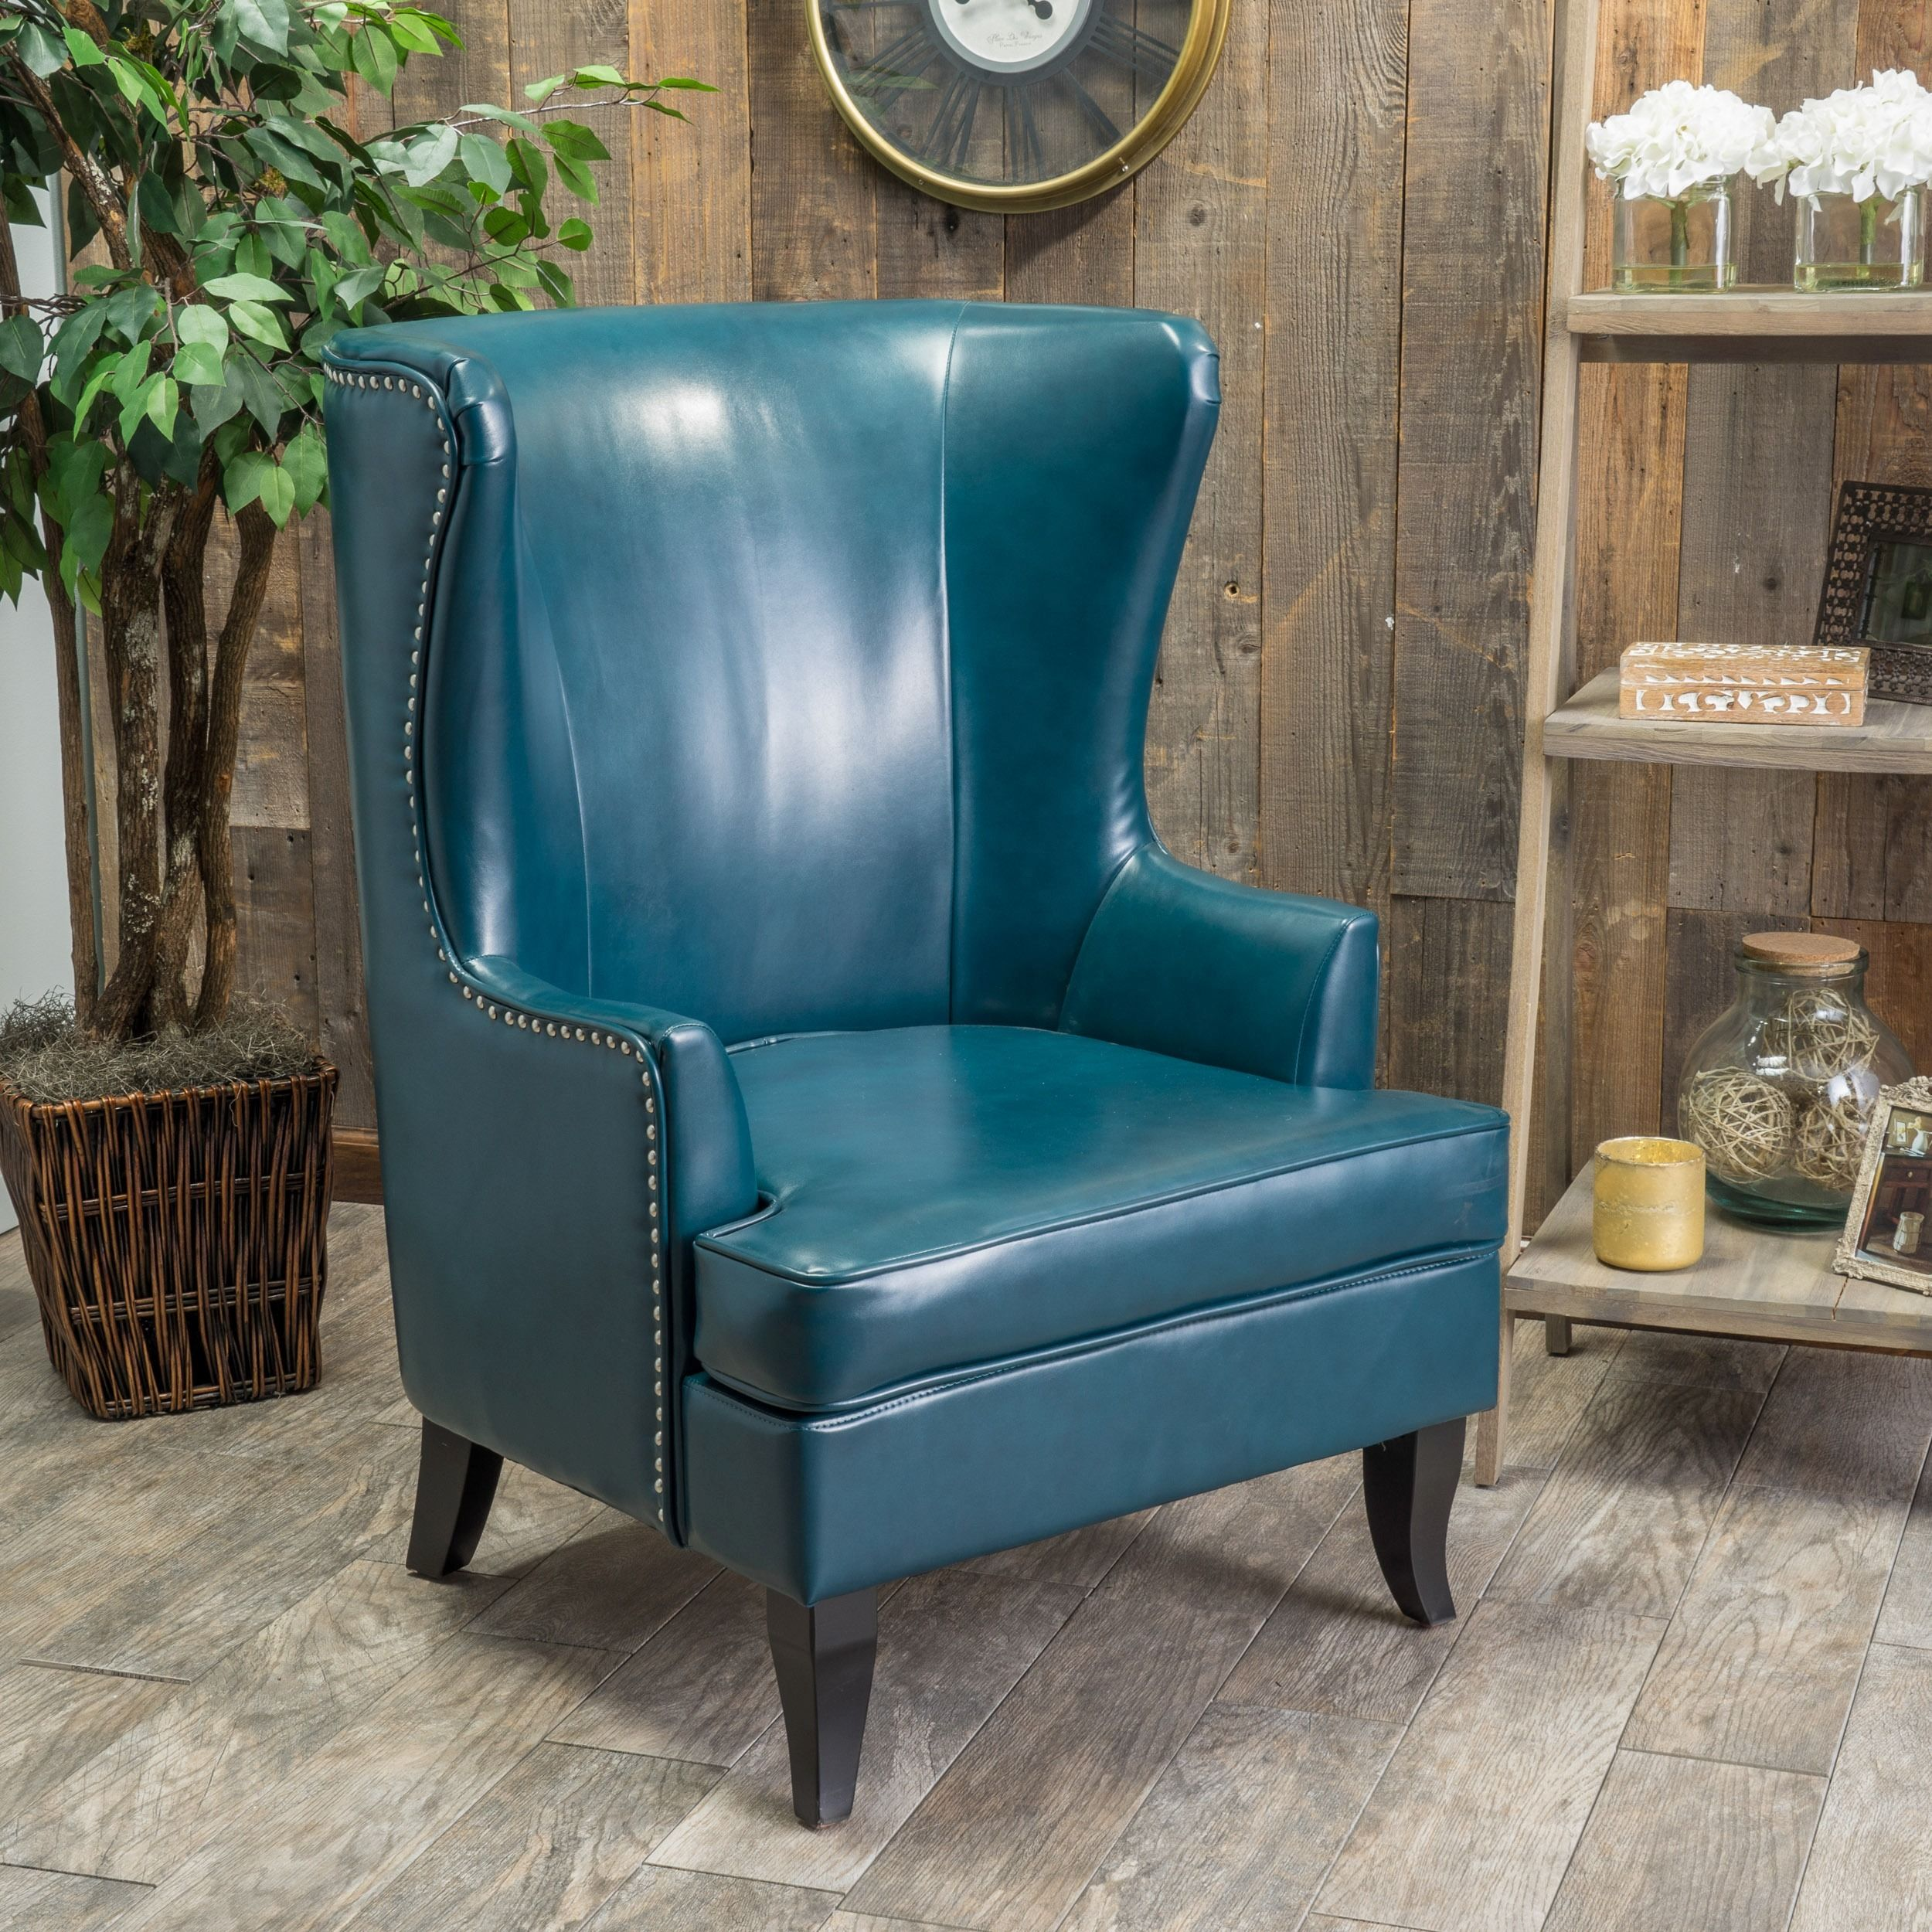 Overstuffed Wingback Chair The Shape And Height Of The Back Command Attention While